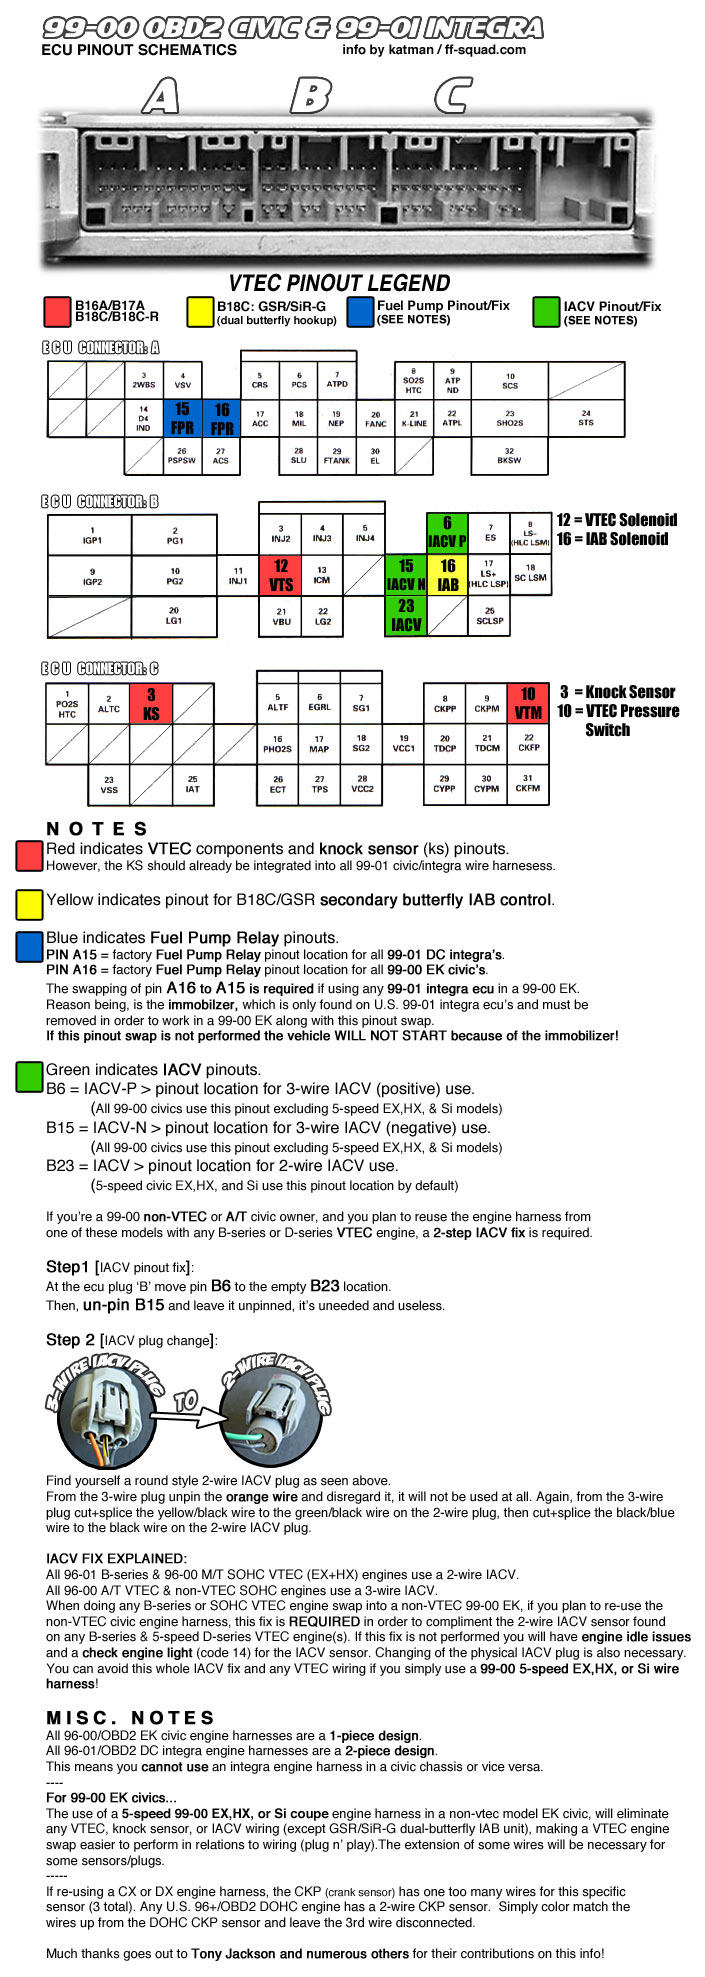 Obd1 Wiring Diagram on obd1 gmc c3500 wiring diagram